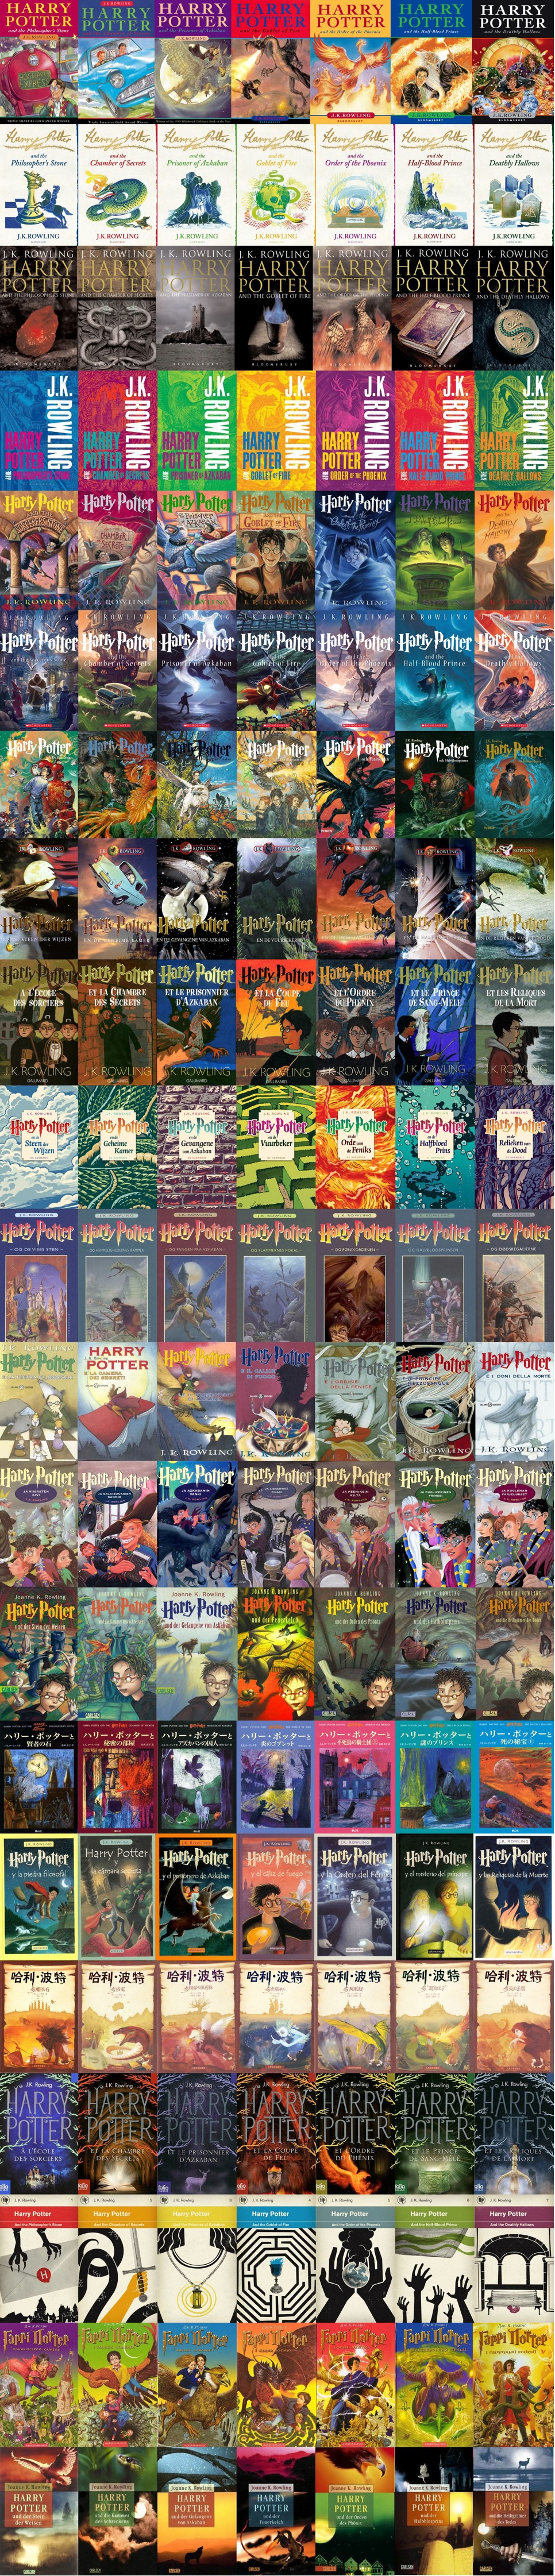 Book Cover Art Styles : Harry potter covers from around the world